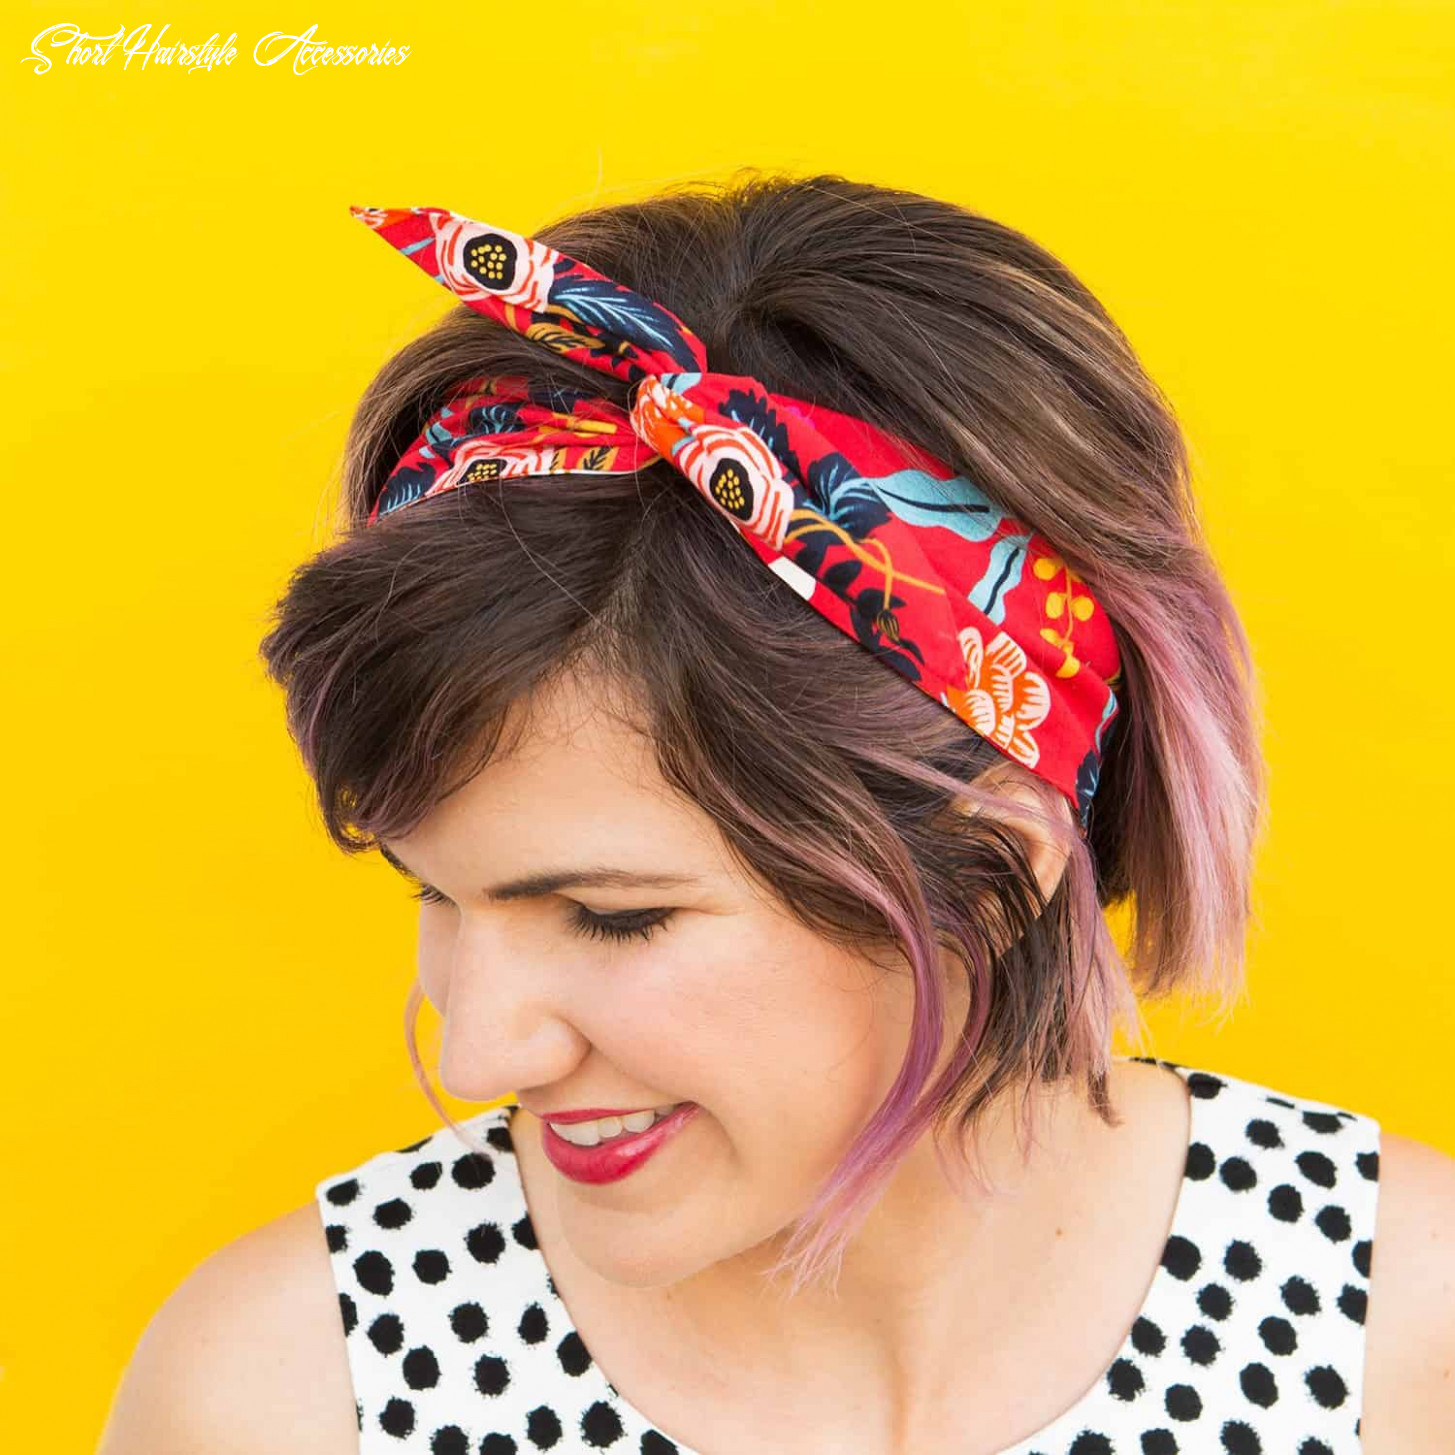 12 diy accessories that look great with short hair short hairstyle accessories